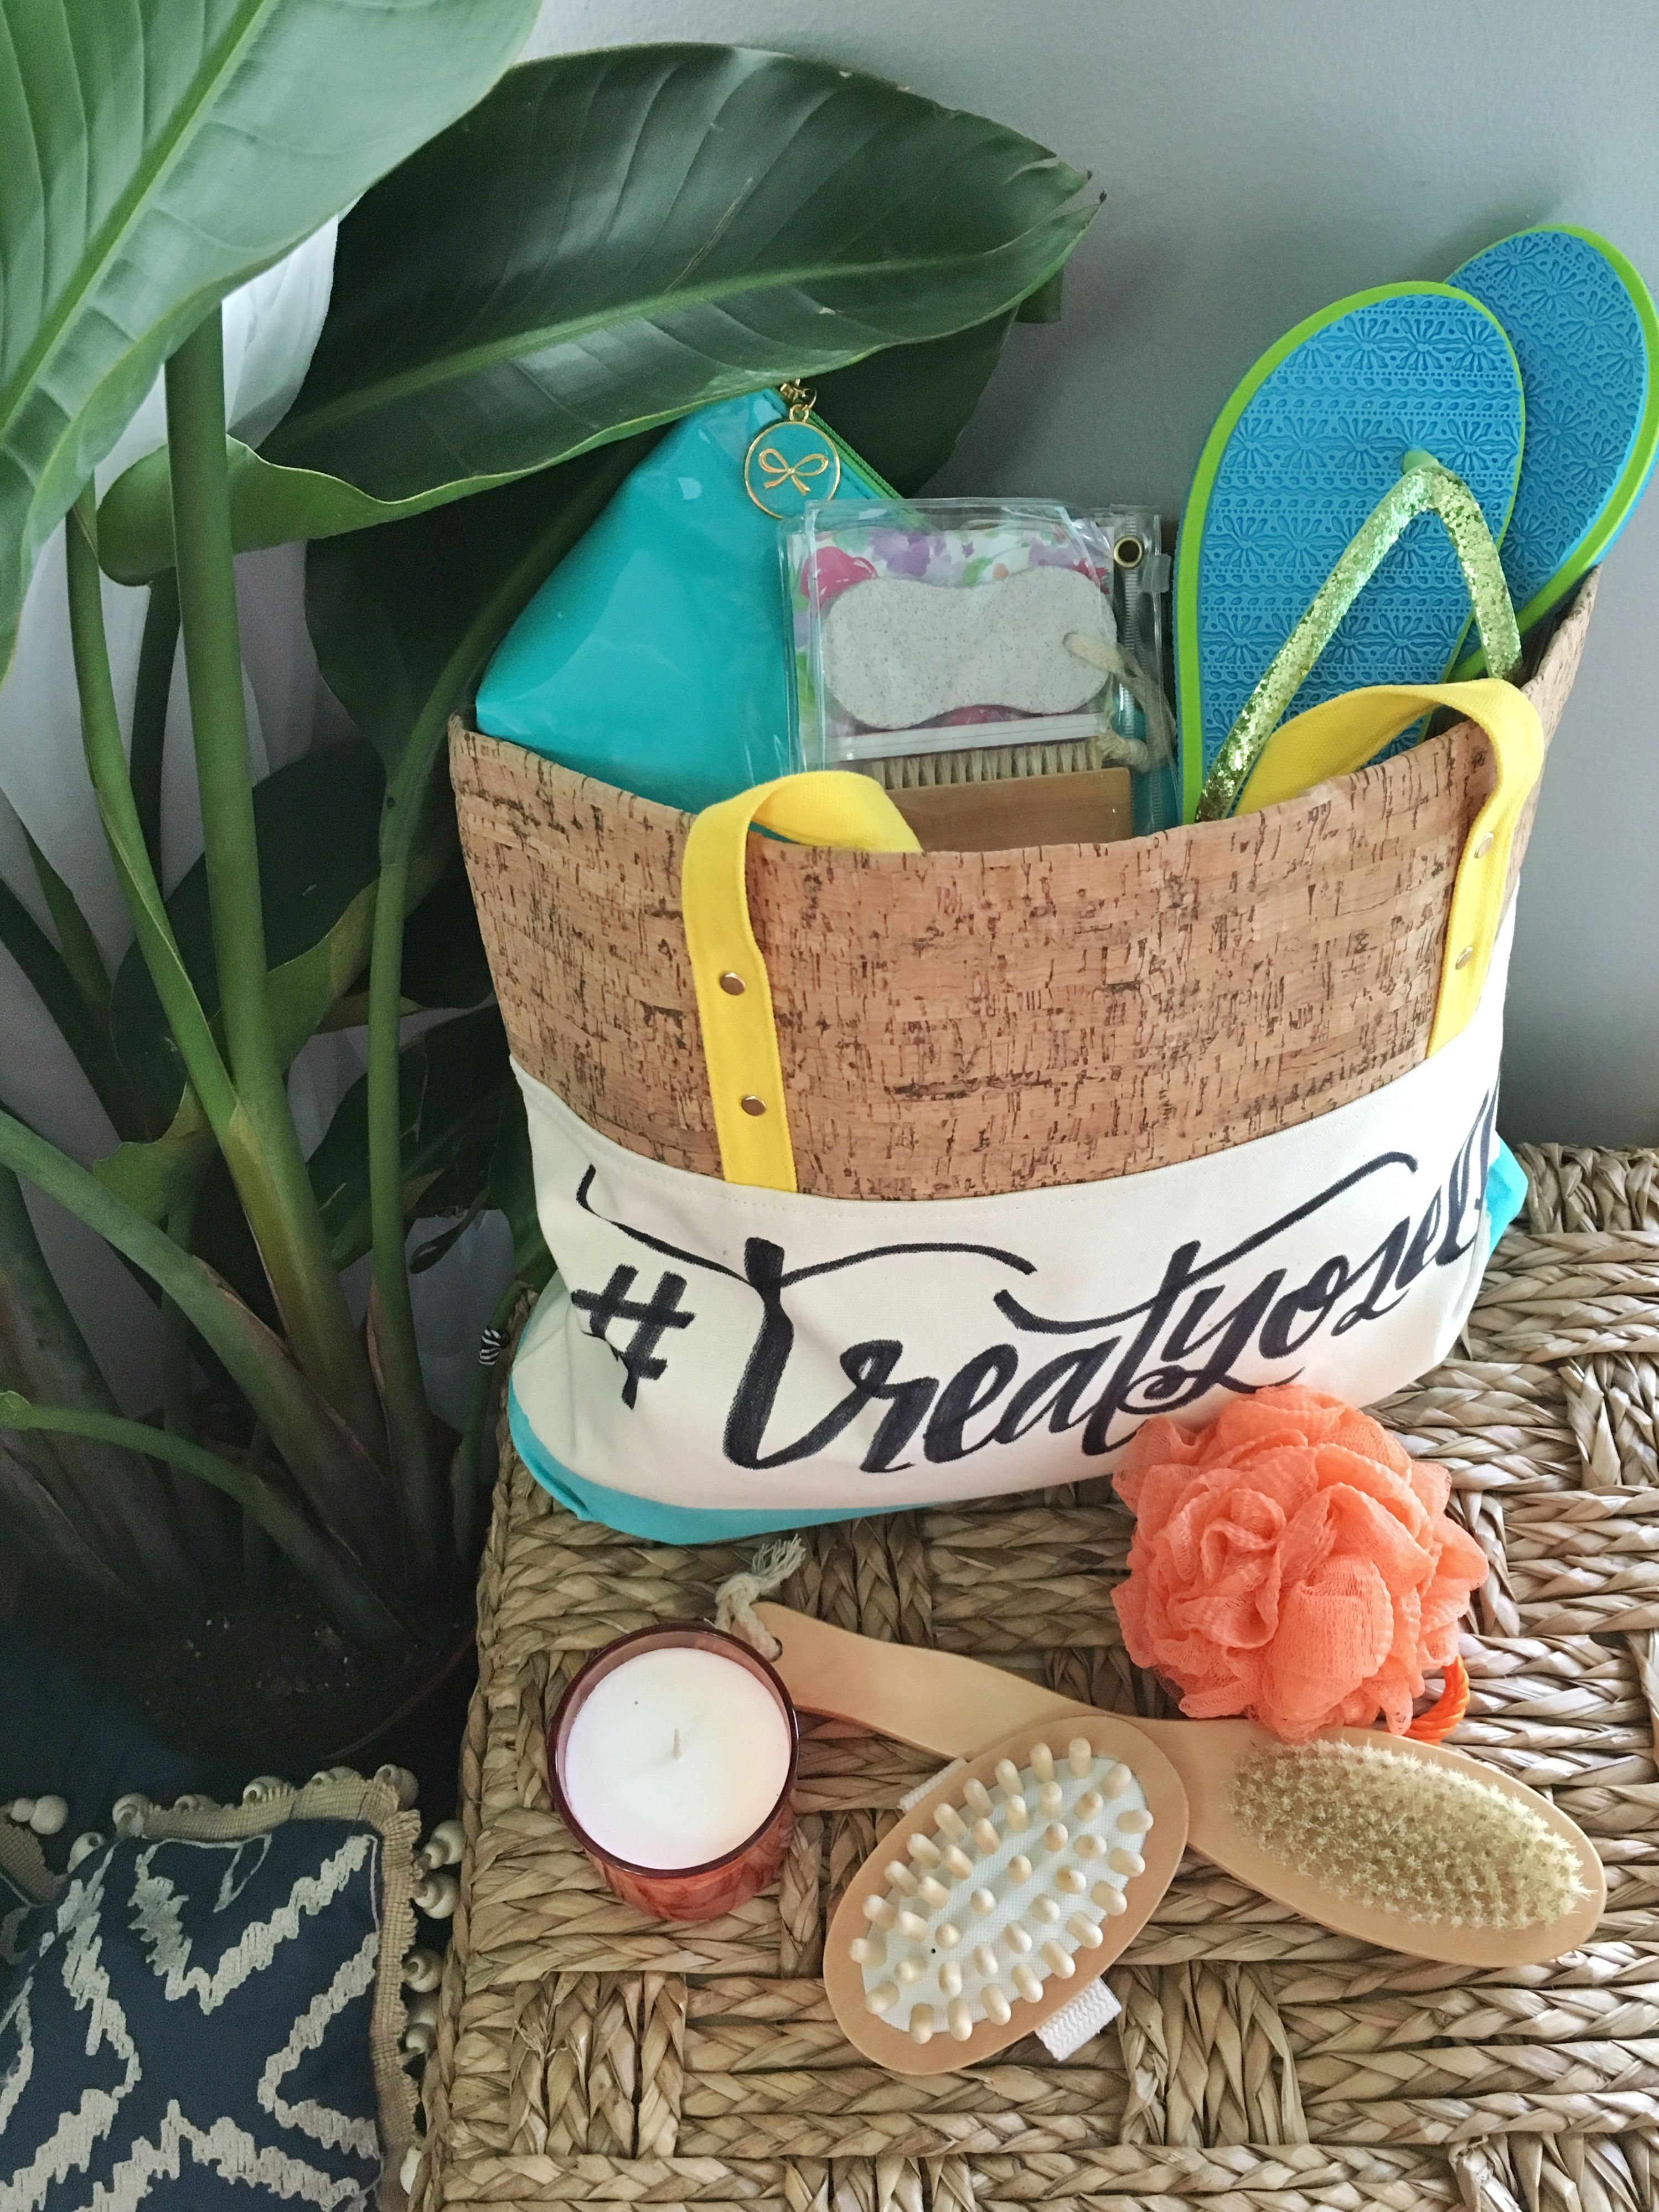 Treat Yoself Tote Bag Gift Basket DIY